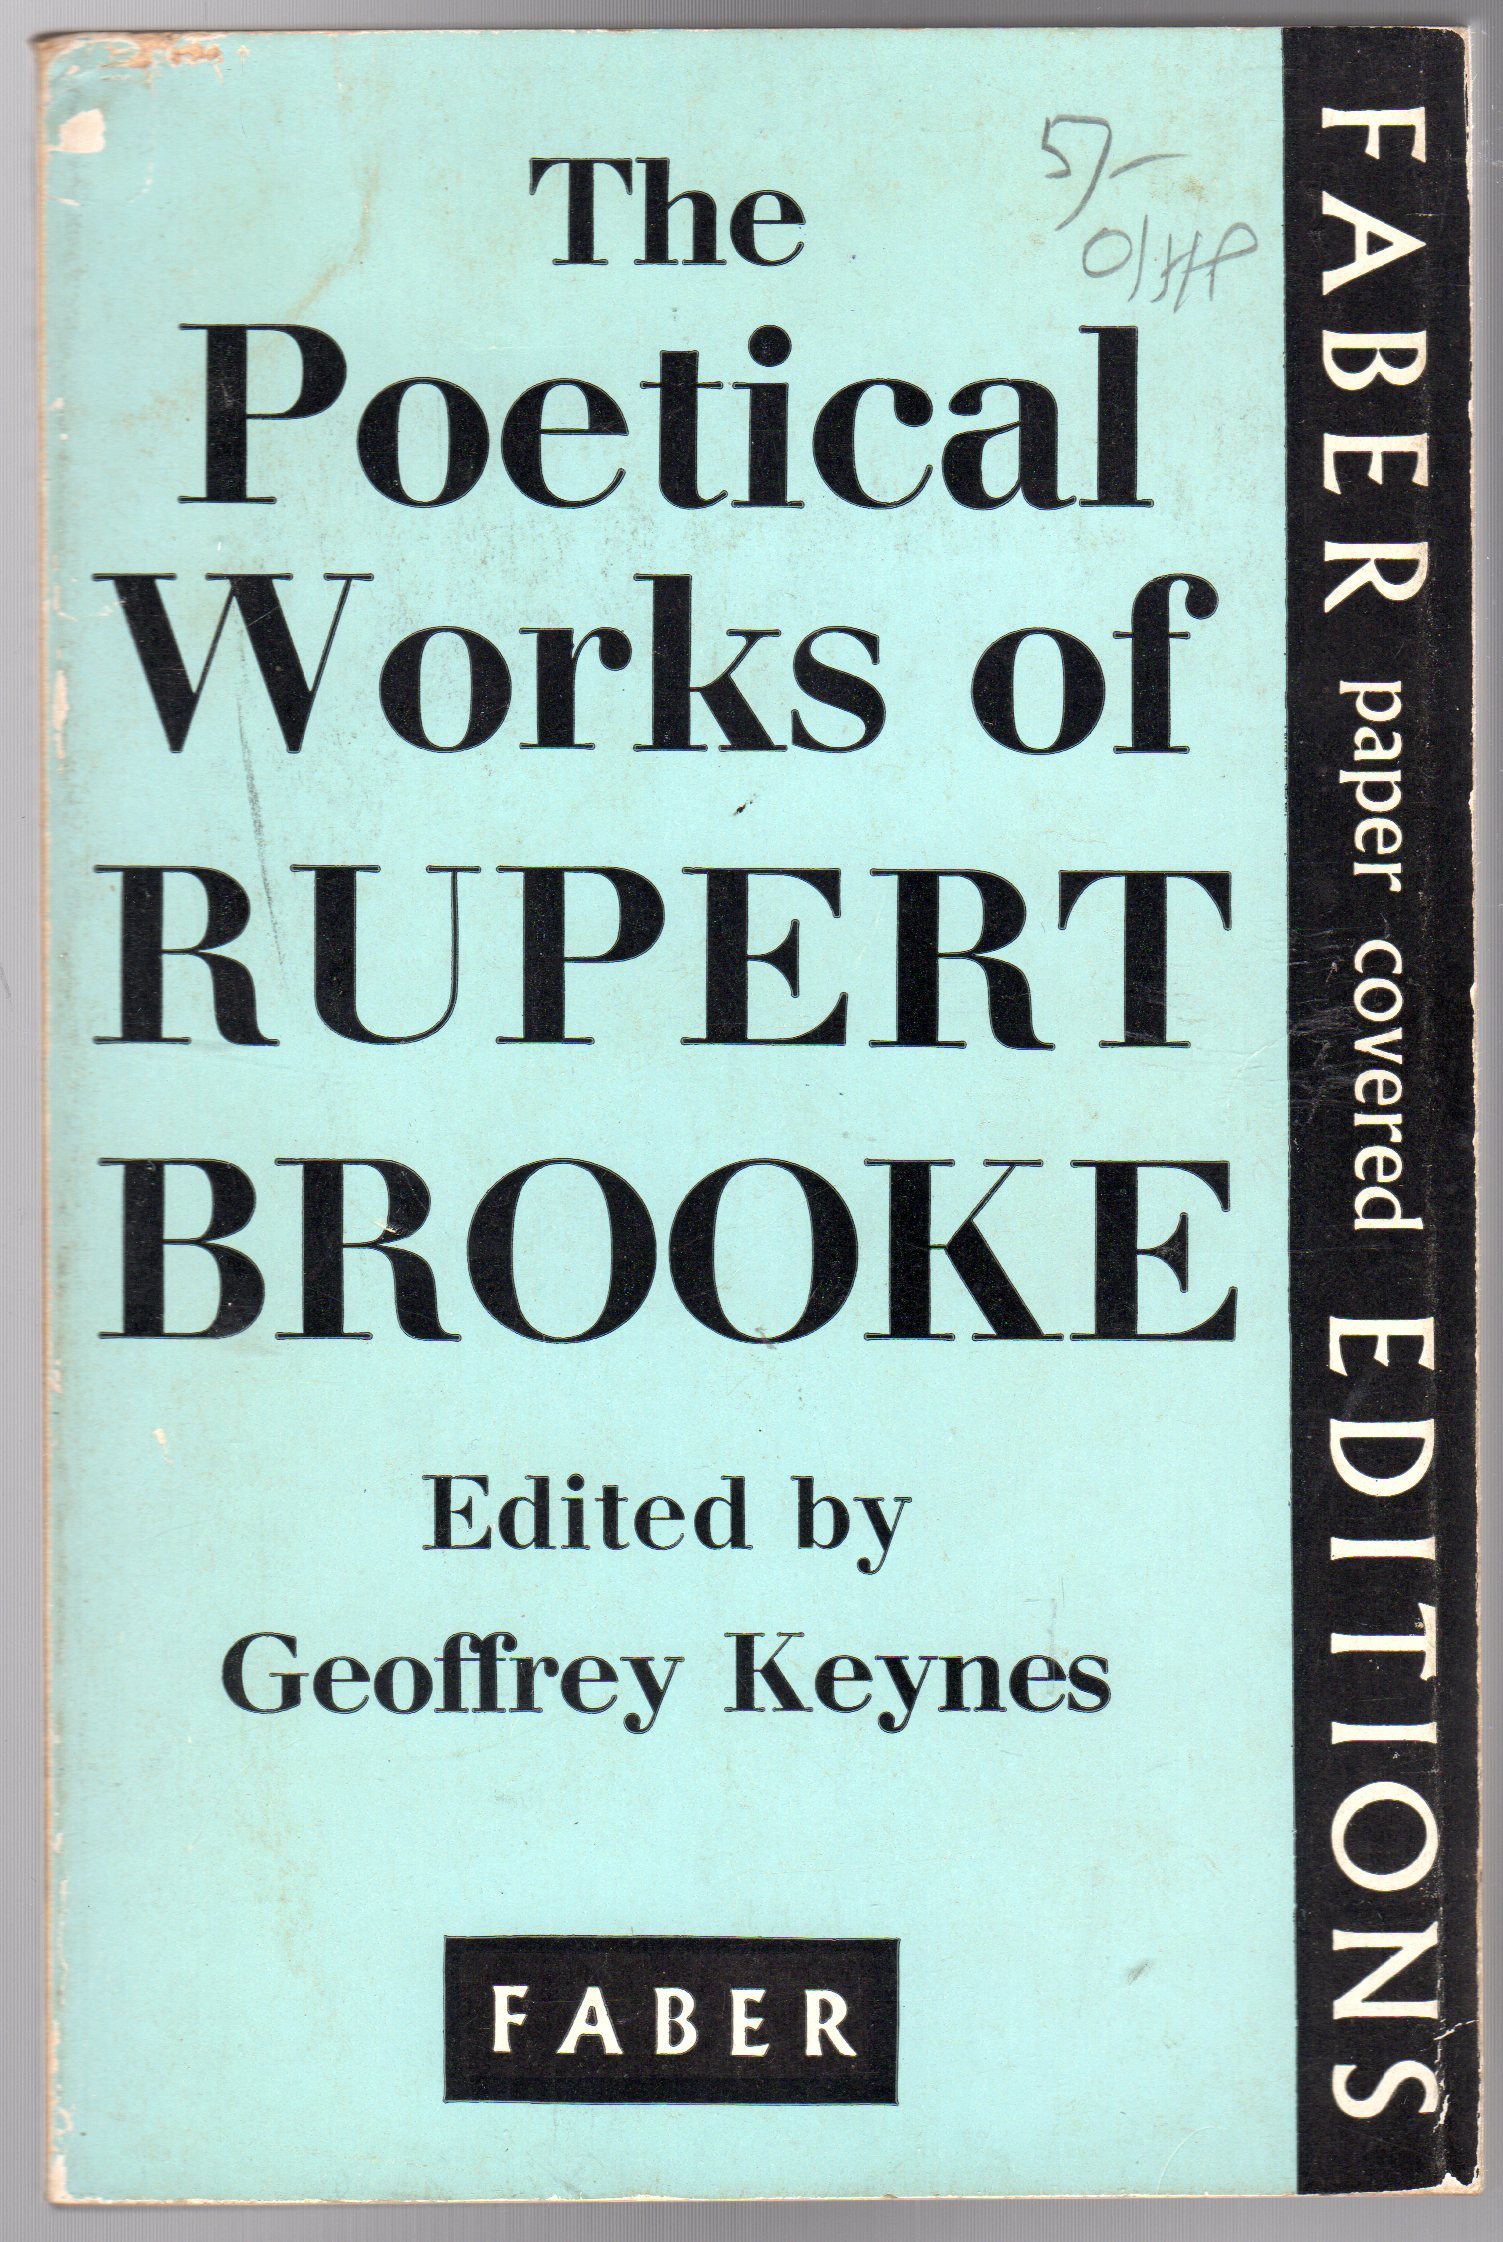 Image for The Poetical Works of Rupert Brooke